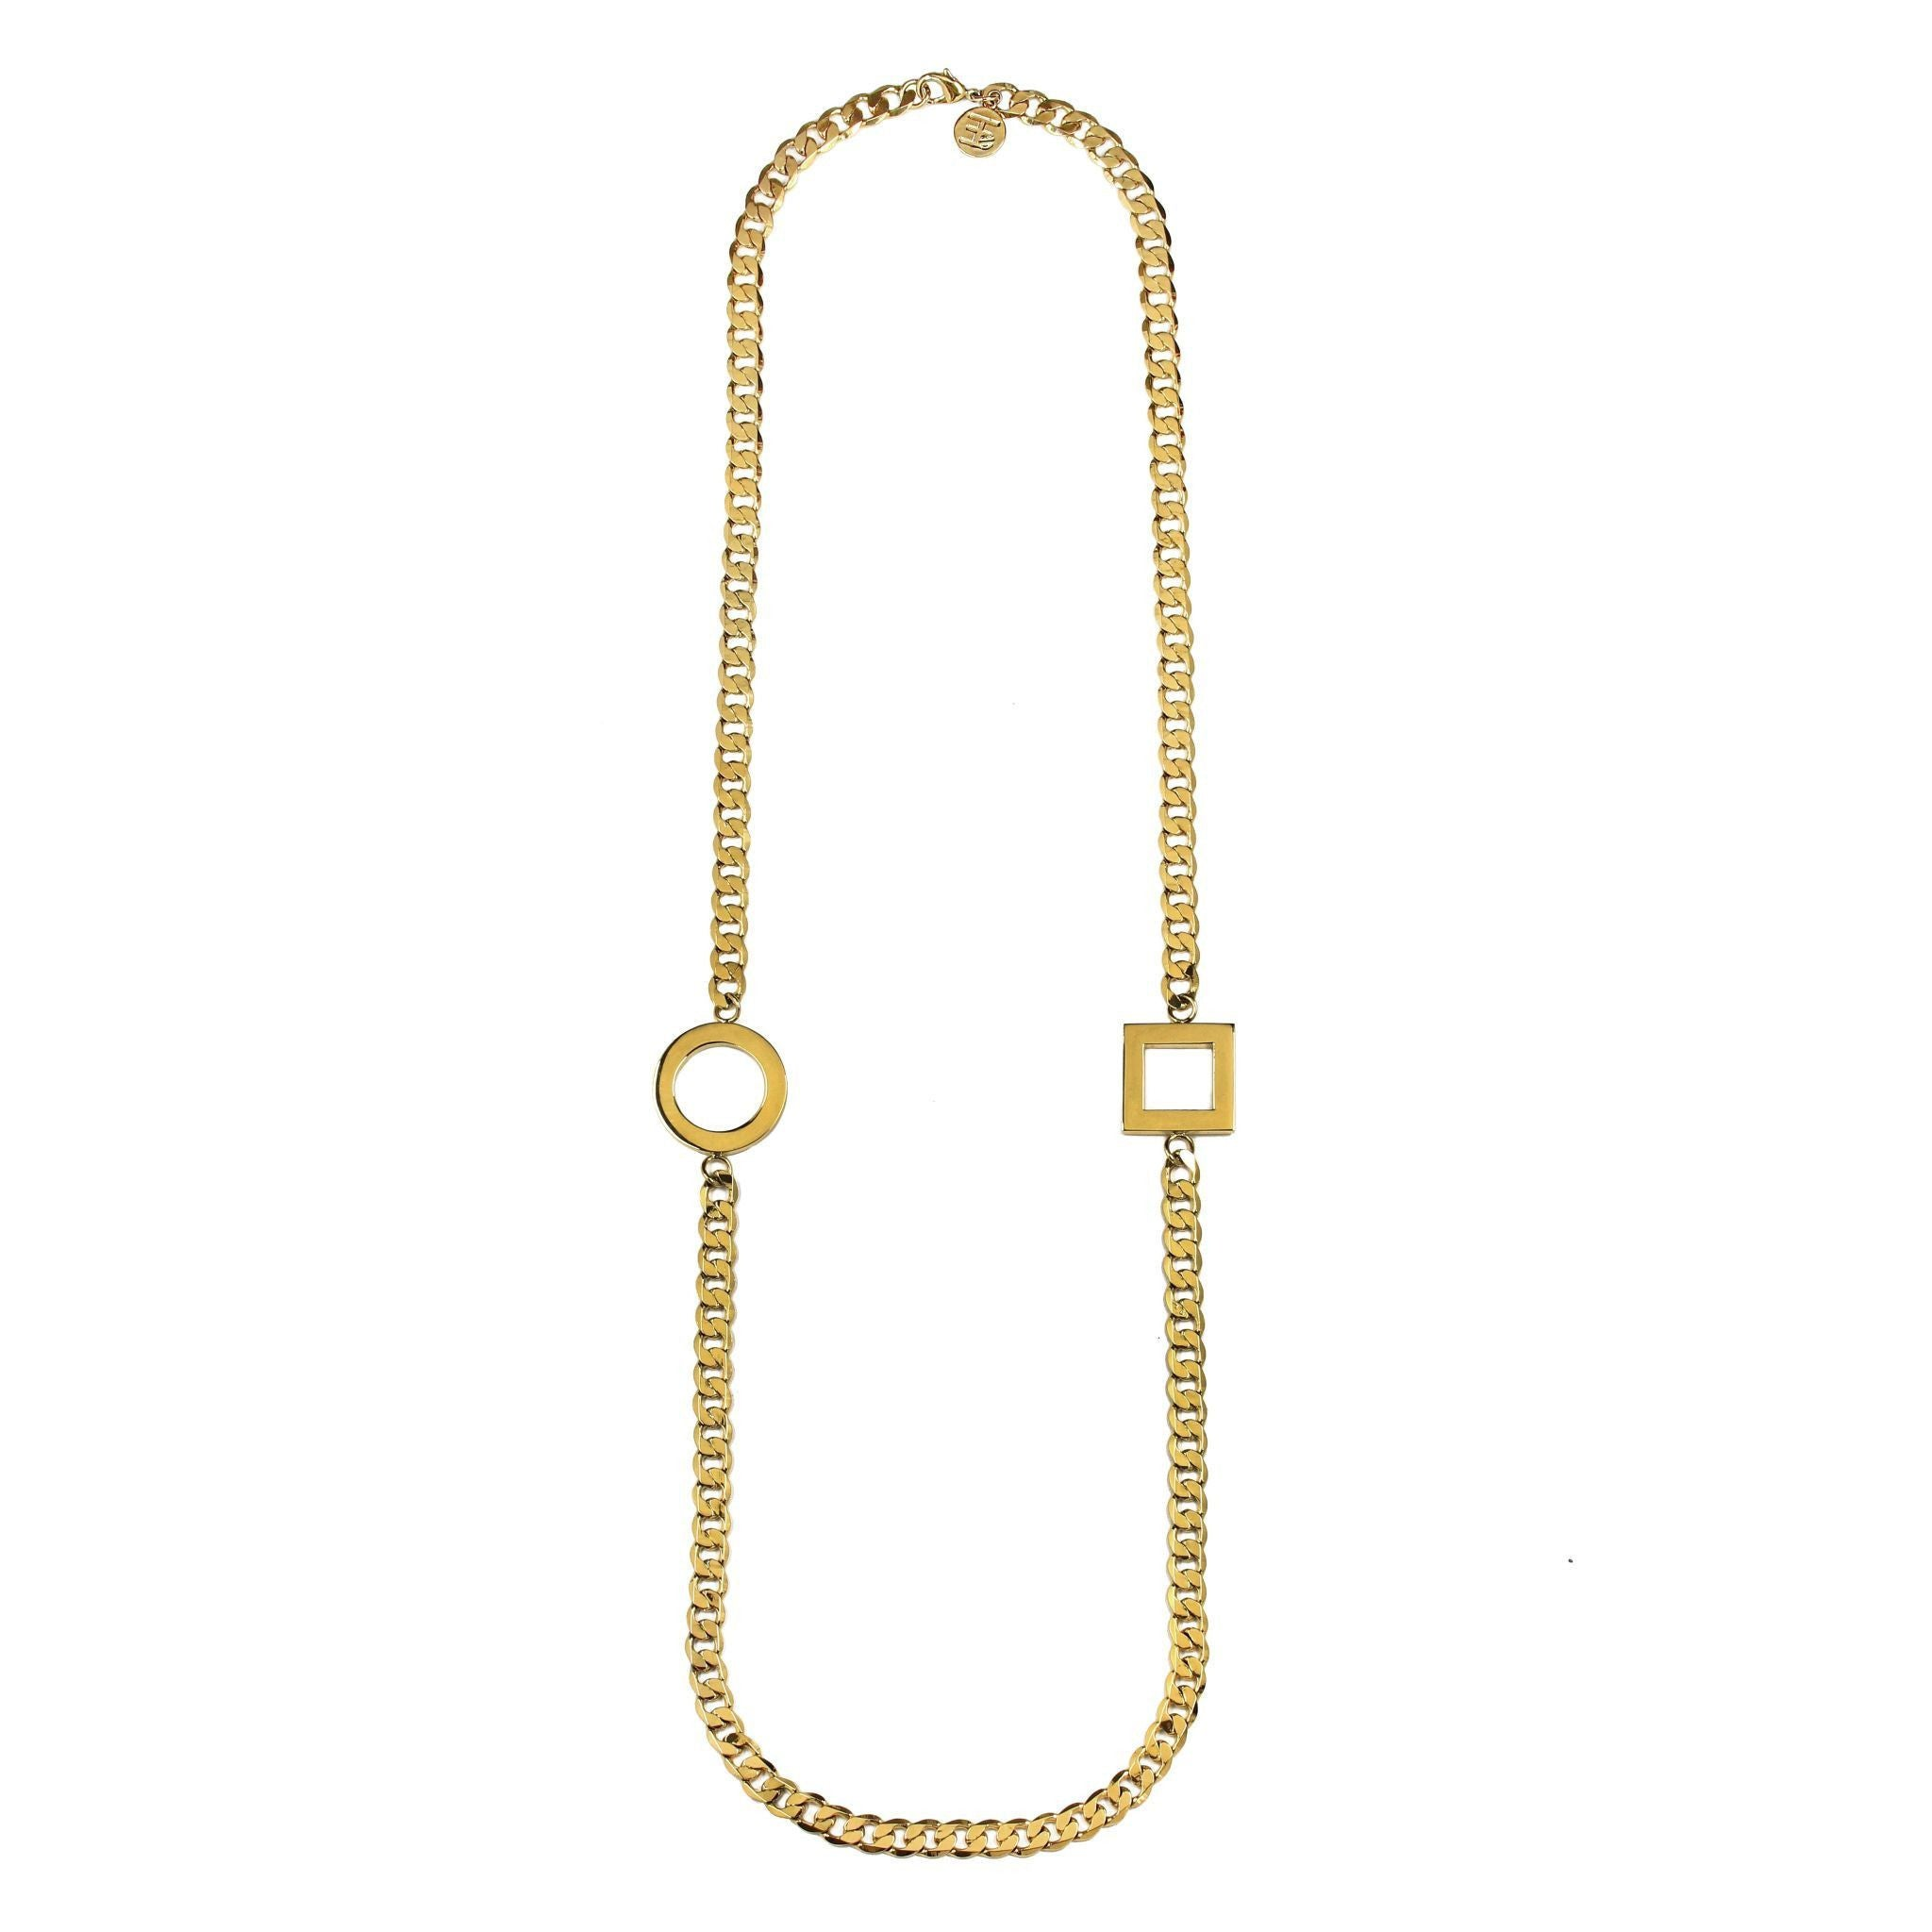 Fang Yuan Long Loop Necklaces Yellow Gold-Necklaces-Everard & Wang